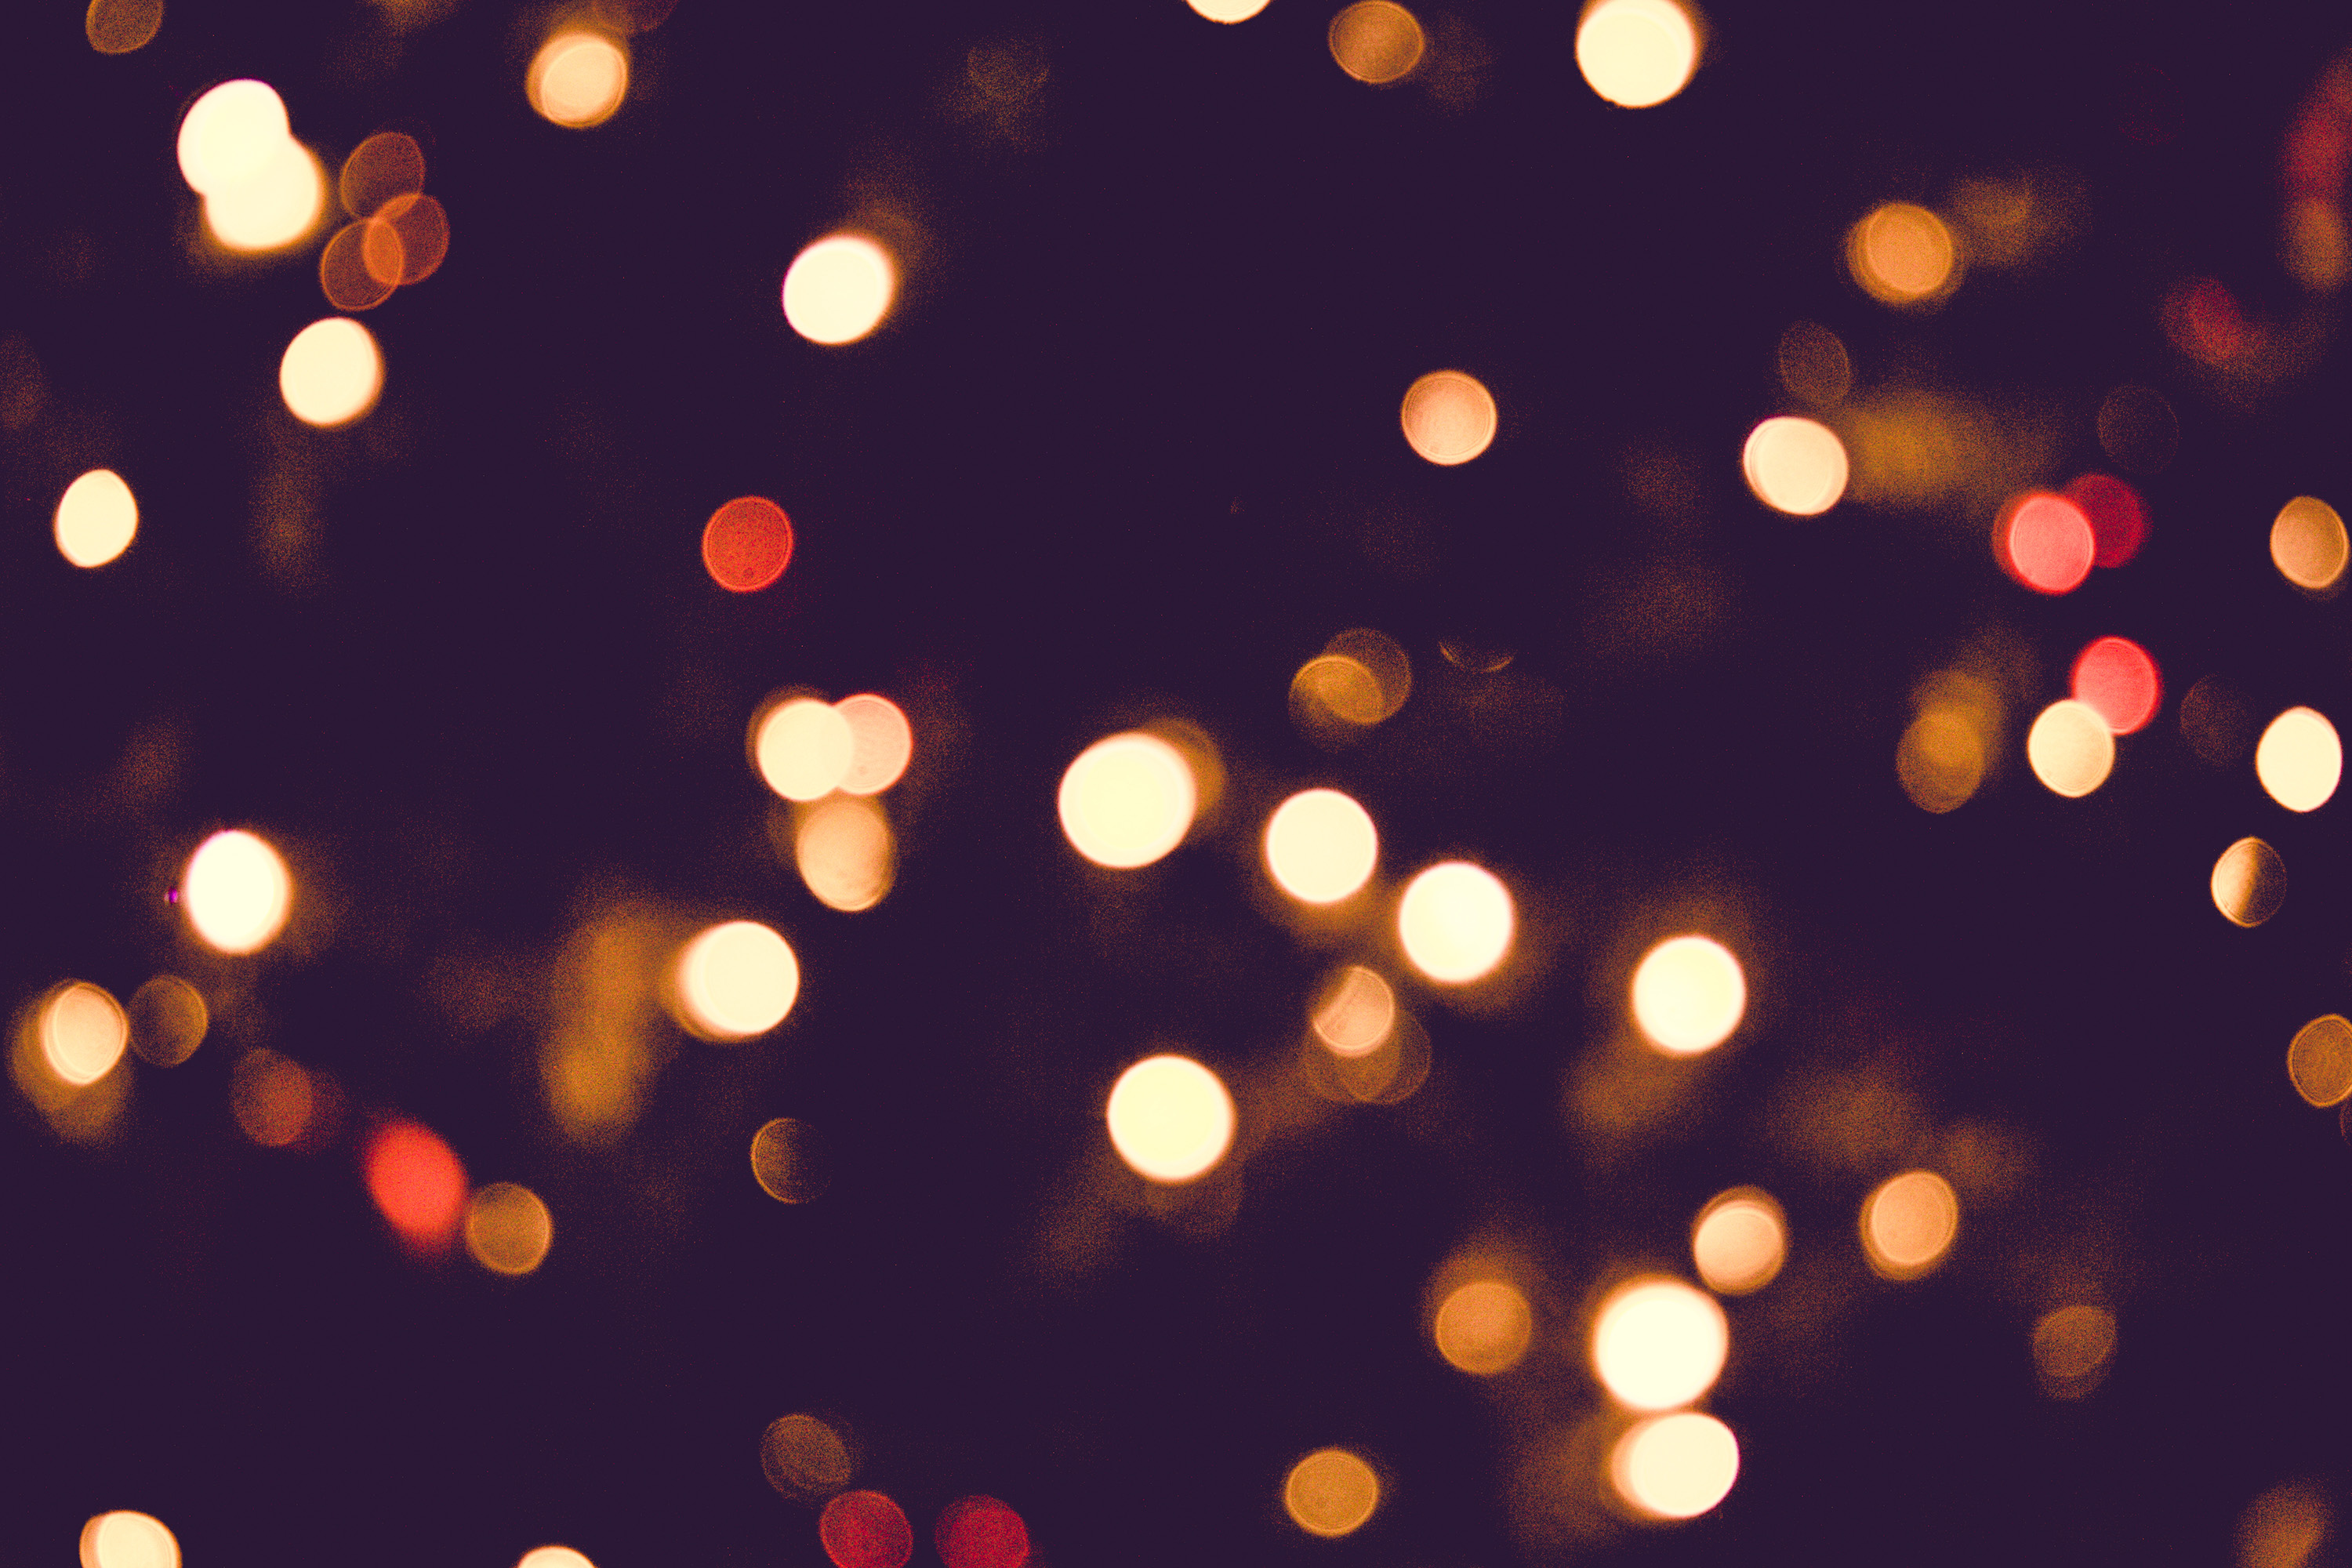 Colorful background with blurry lights, Blur, Bokeh, Light, Photo, HQ Photo